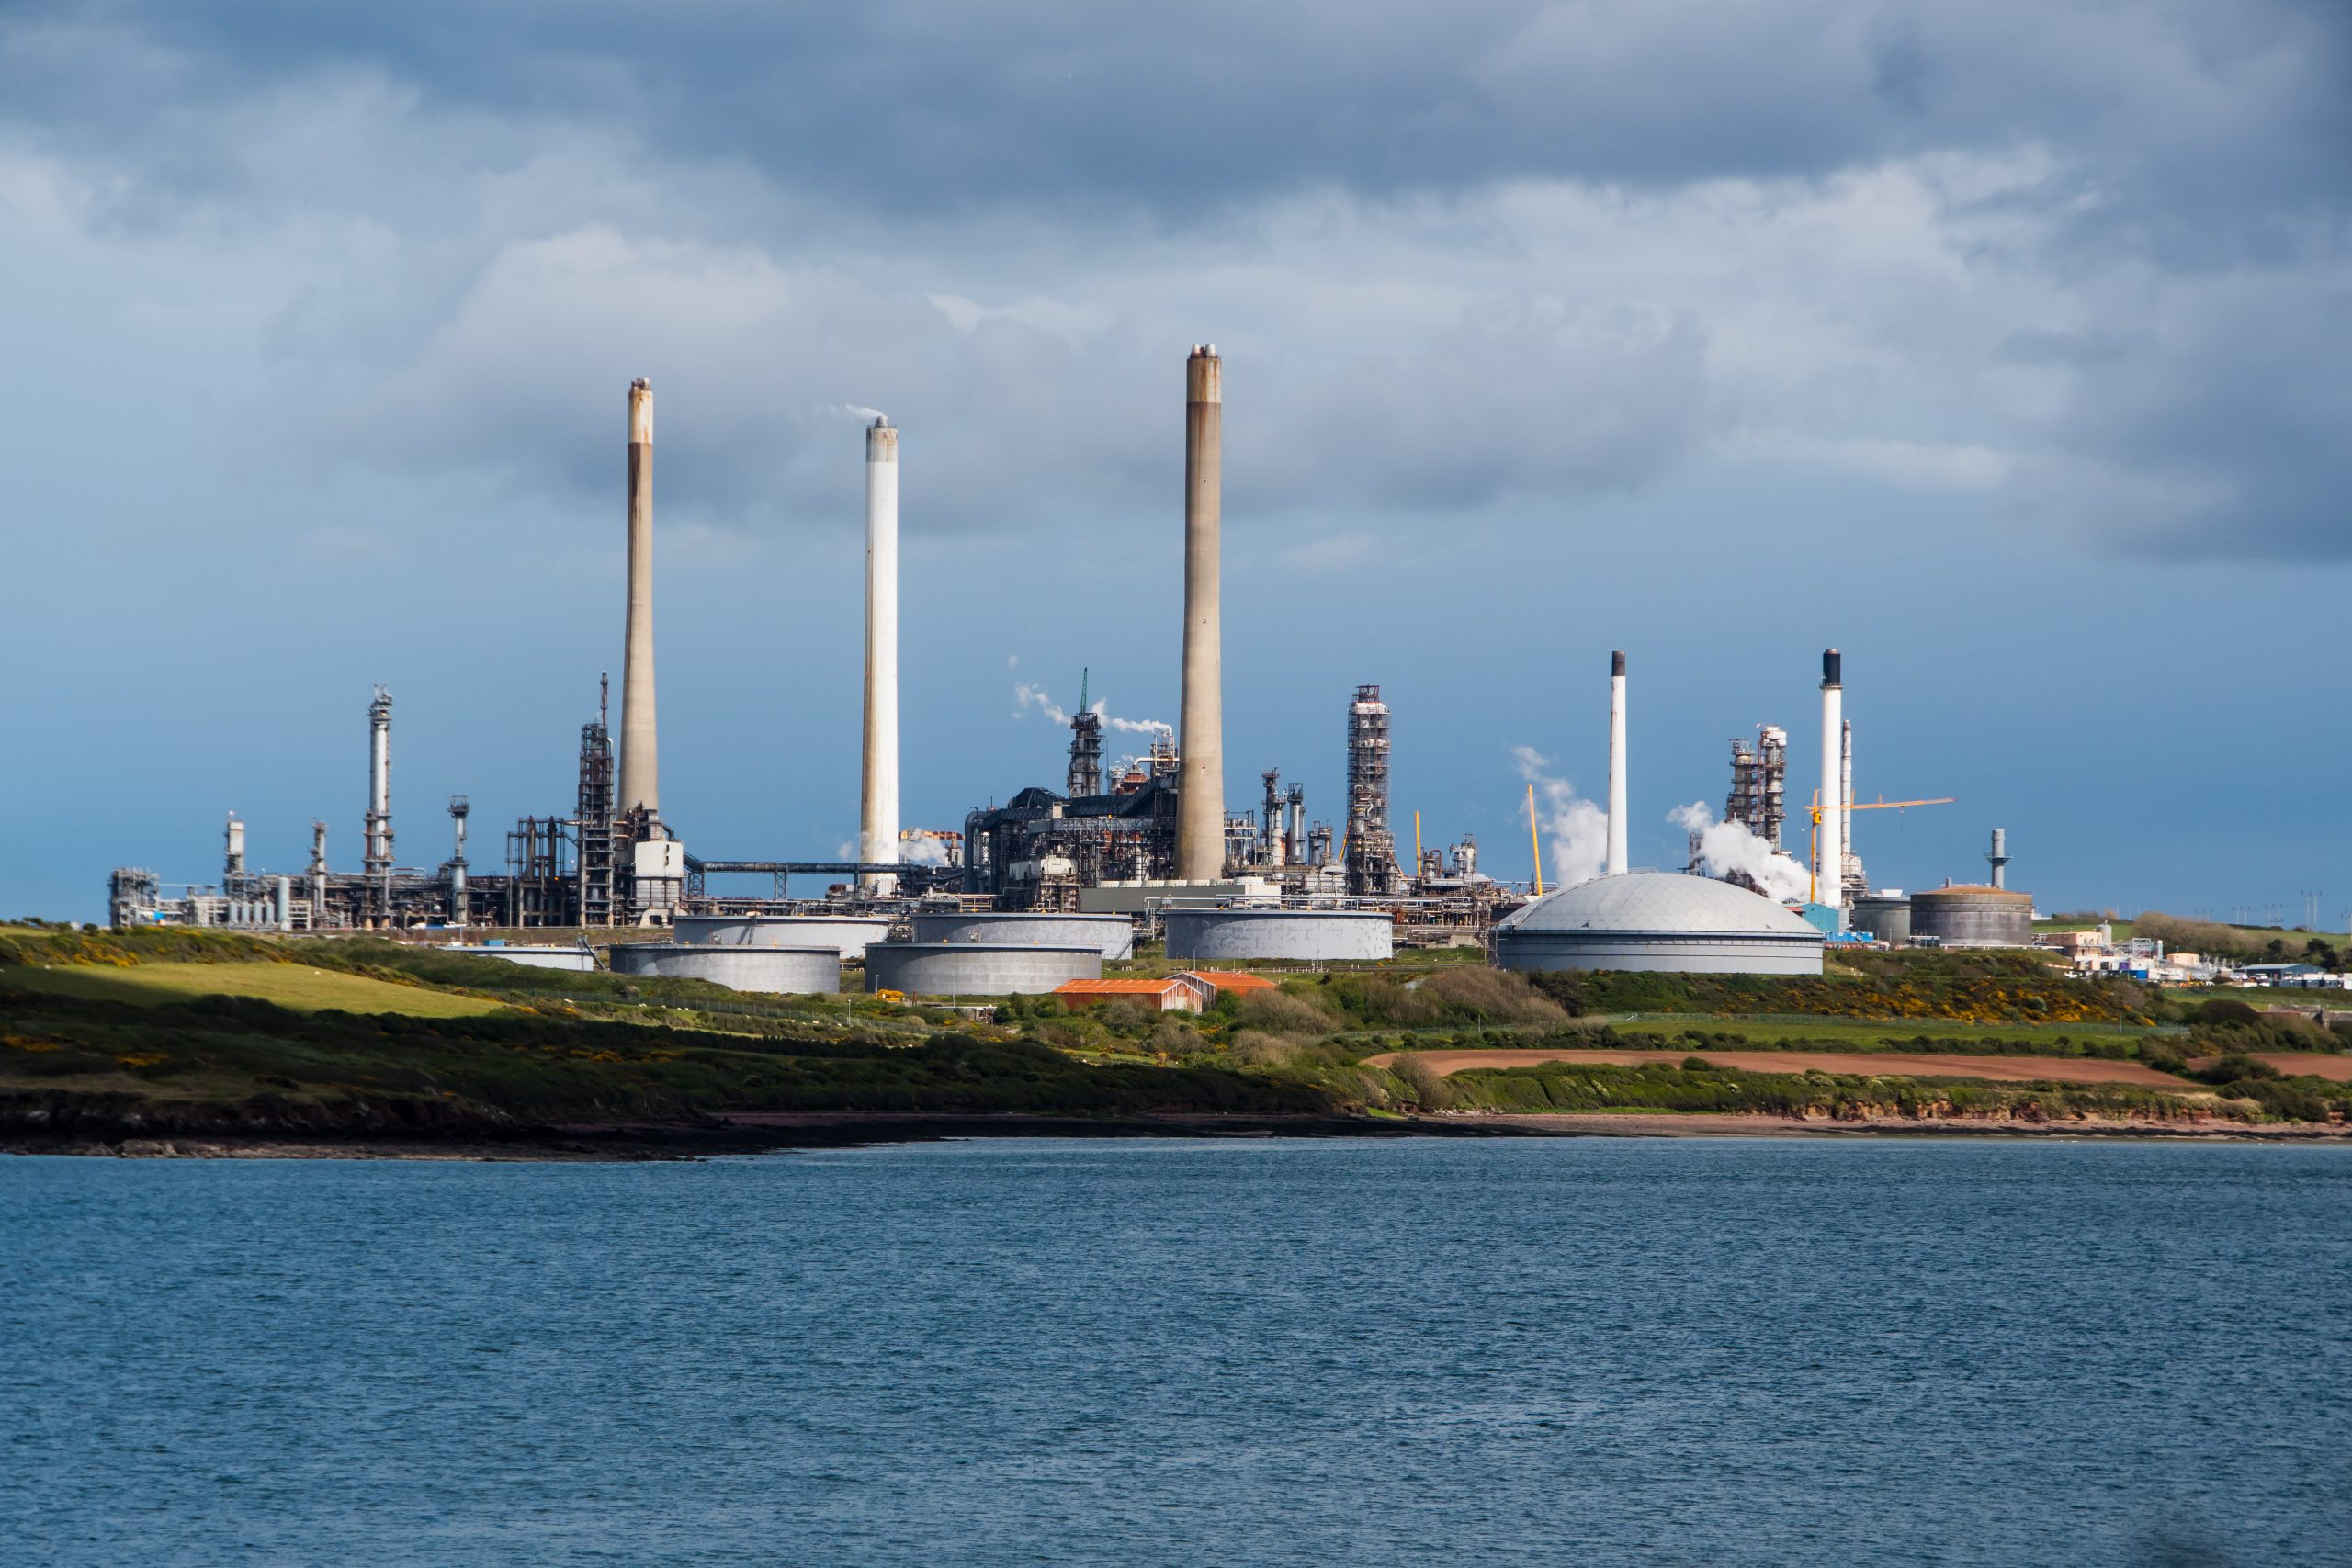 Petrochemical Facility, Milford Haven